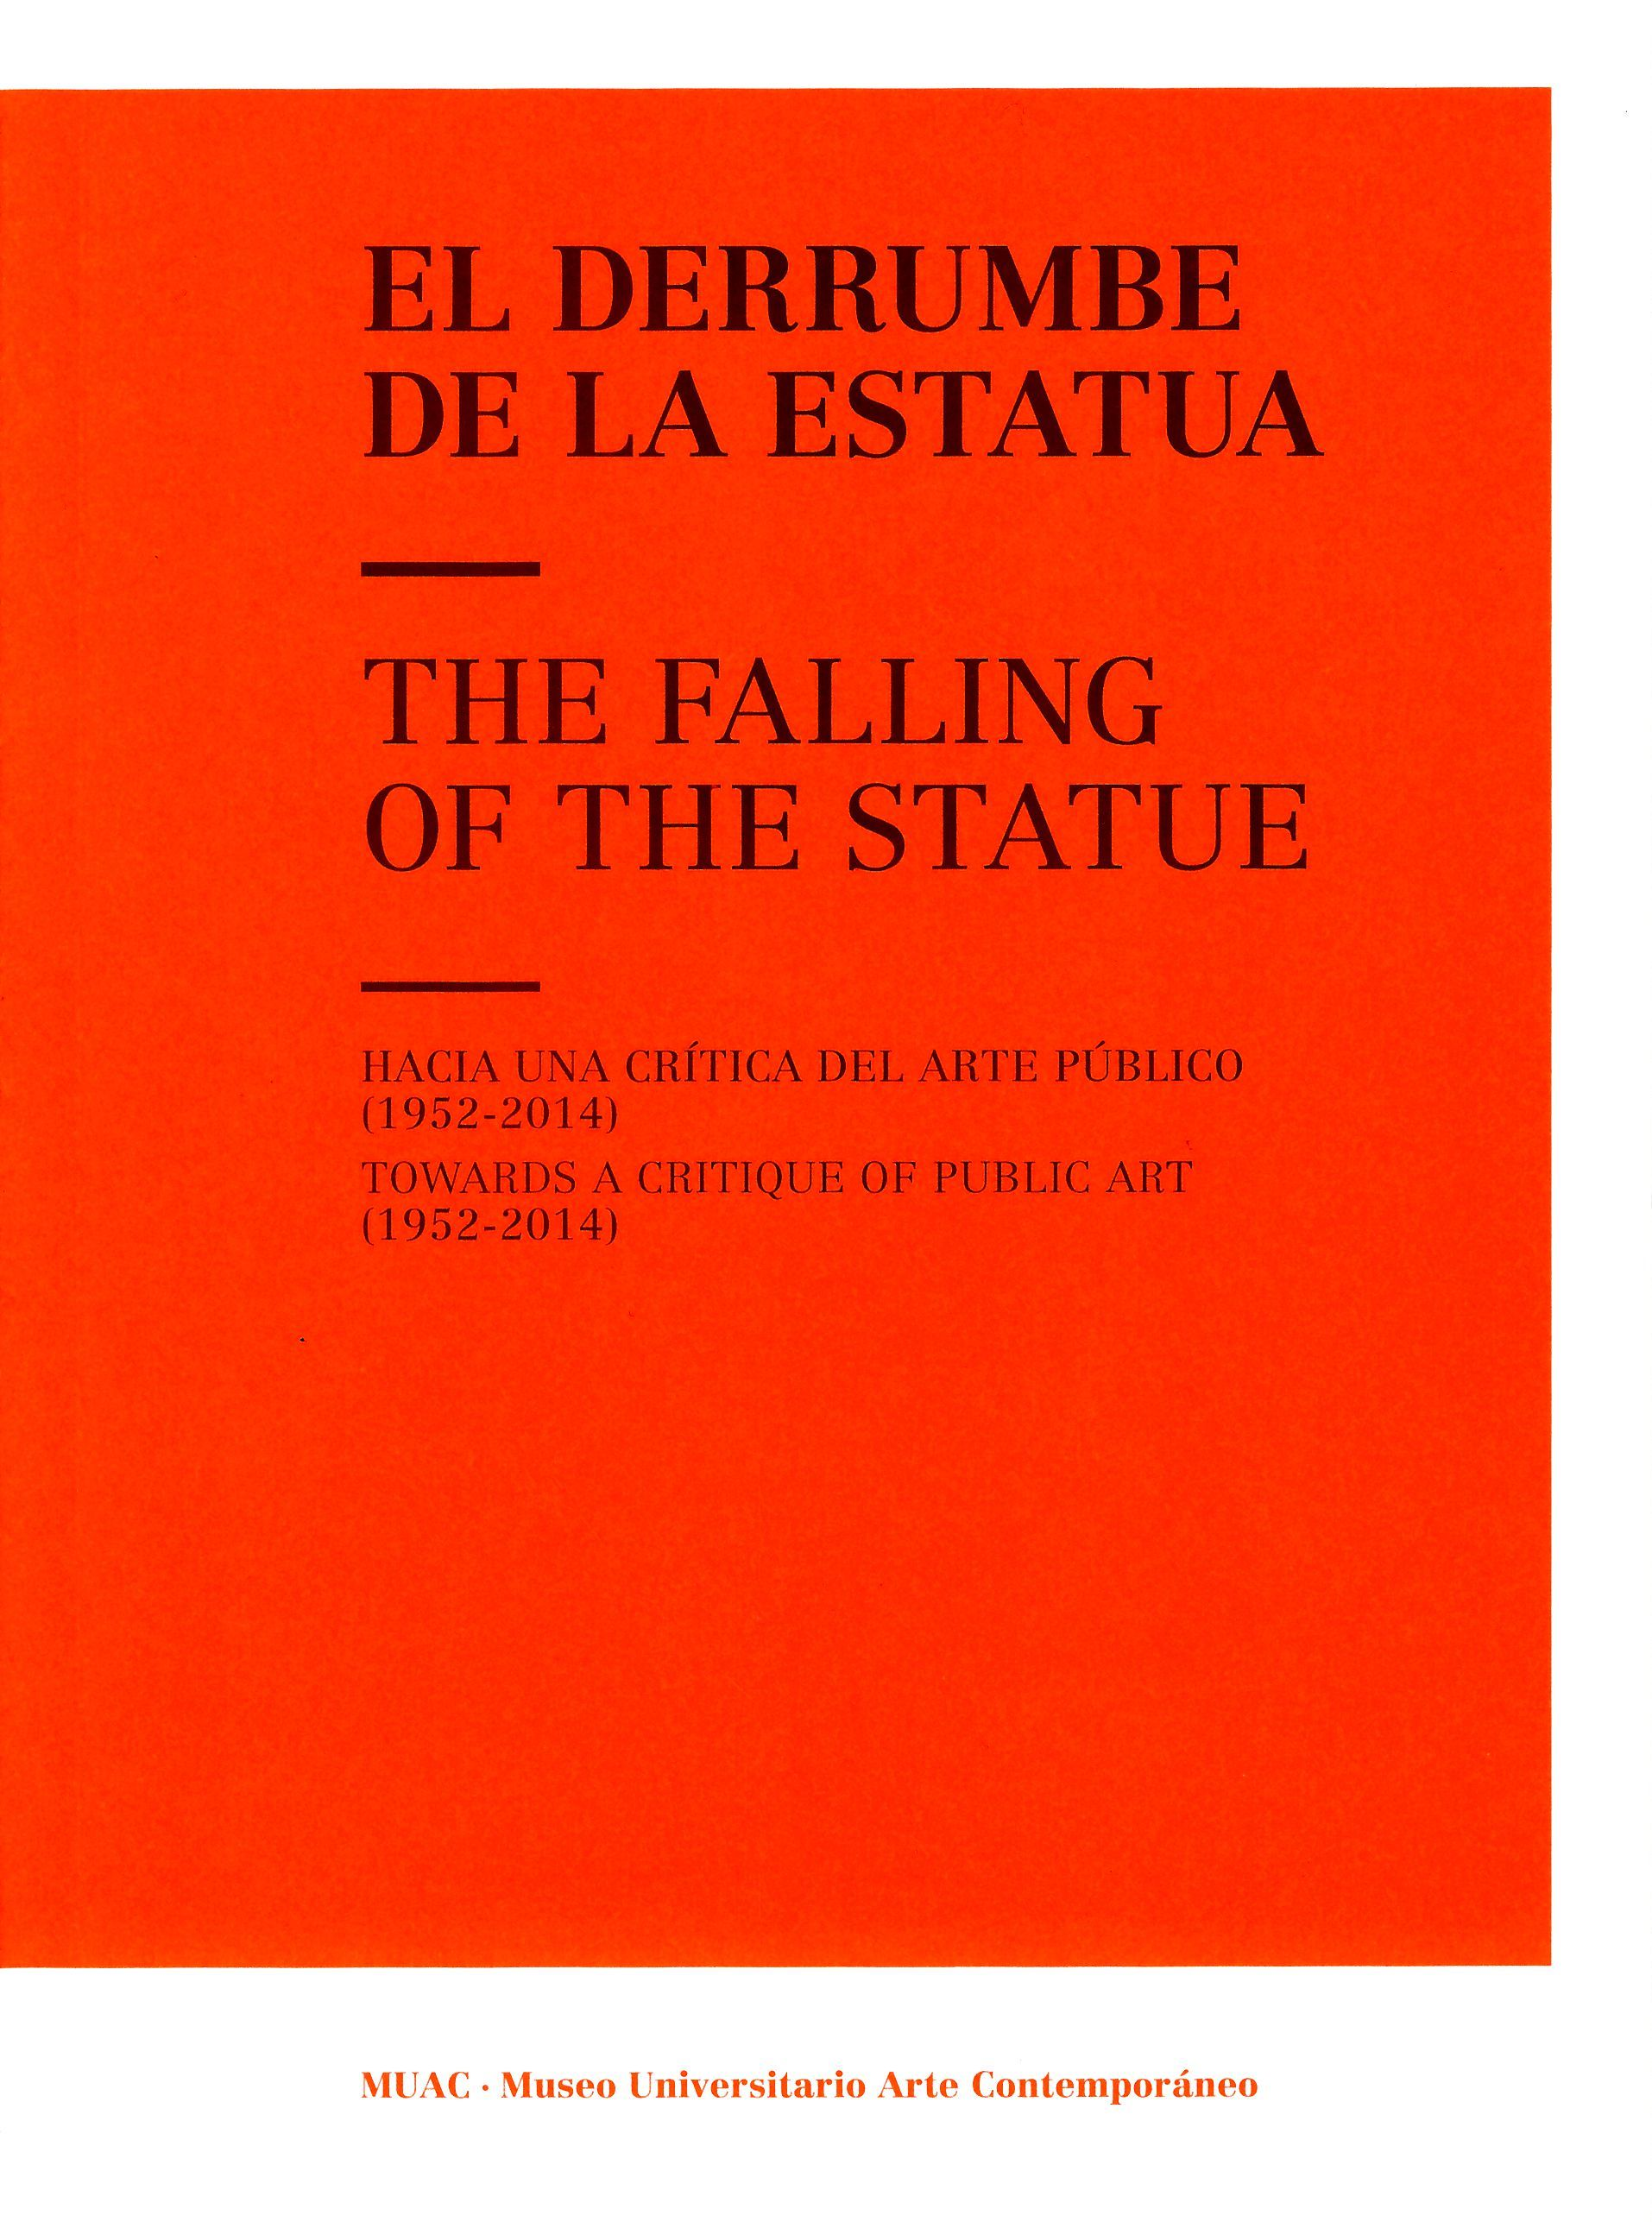 El derrumbe de la estatua The falling of the statue